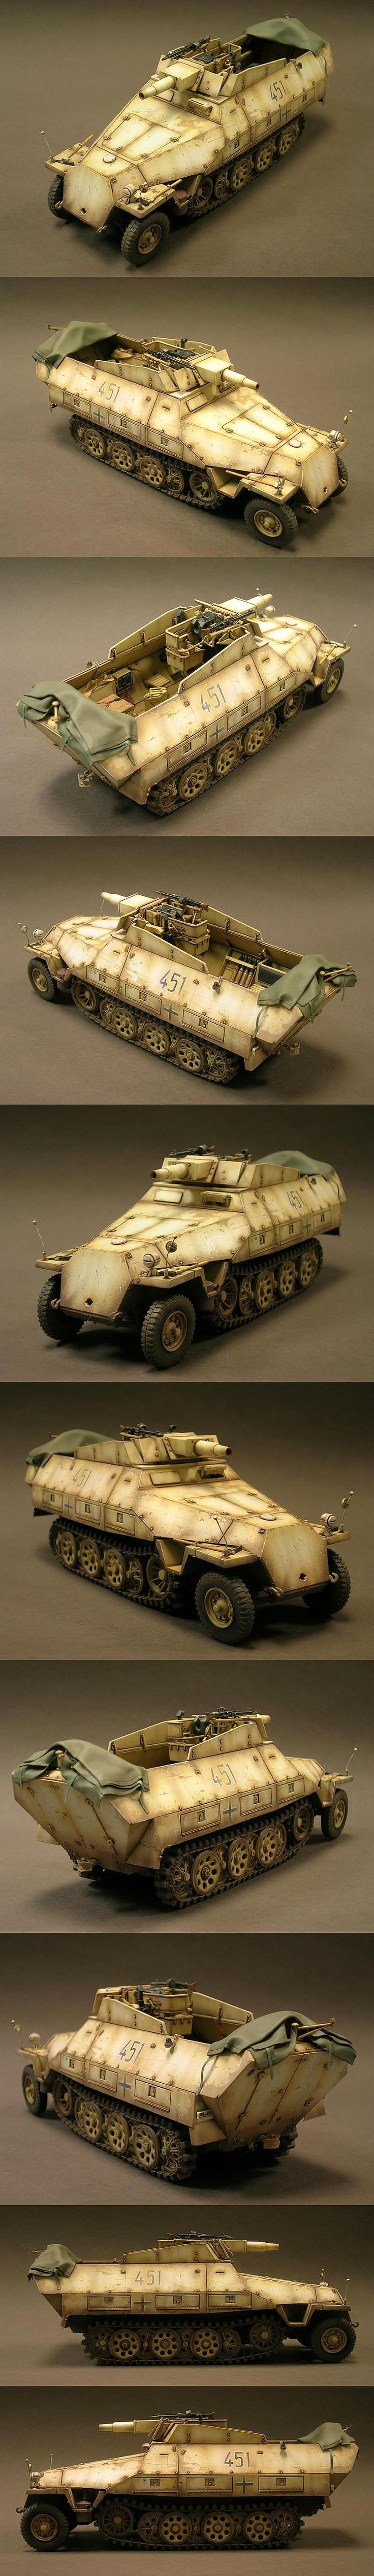 i like this www.airfixmodels.co.uk SdKfz 251/9 1/35 Scale Model